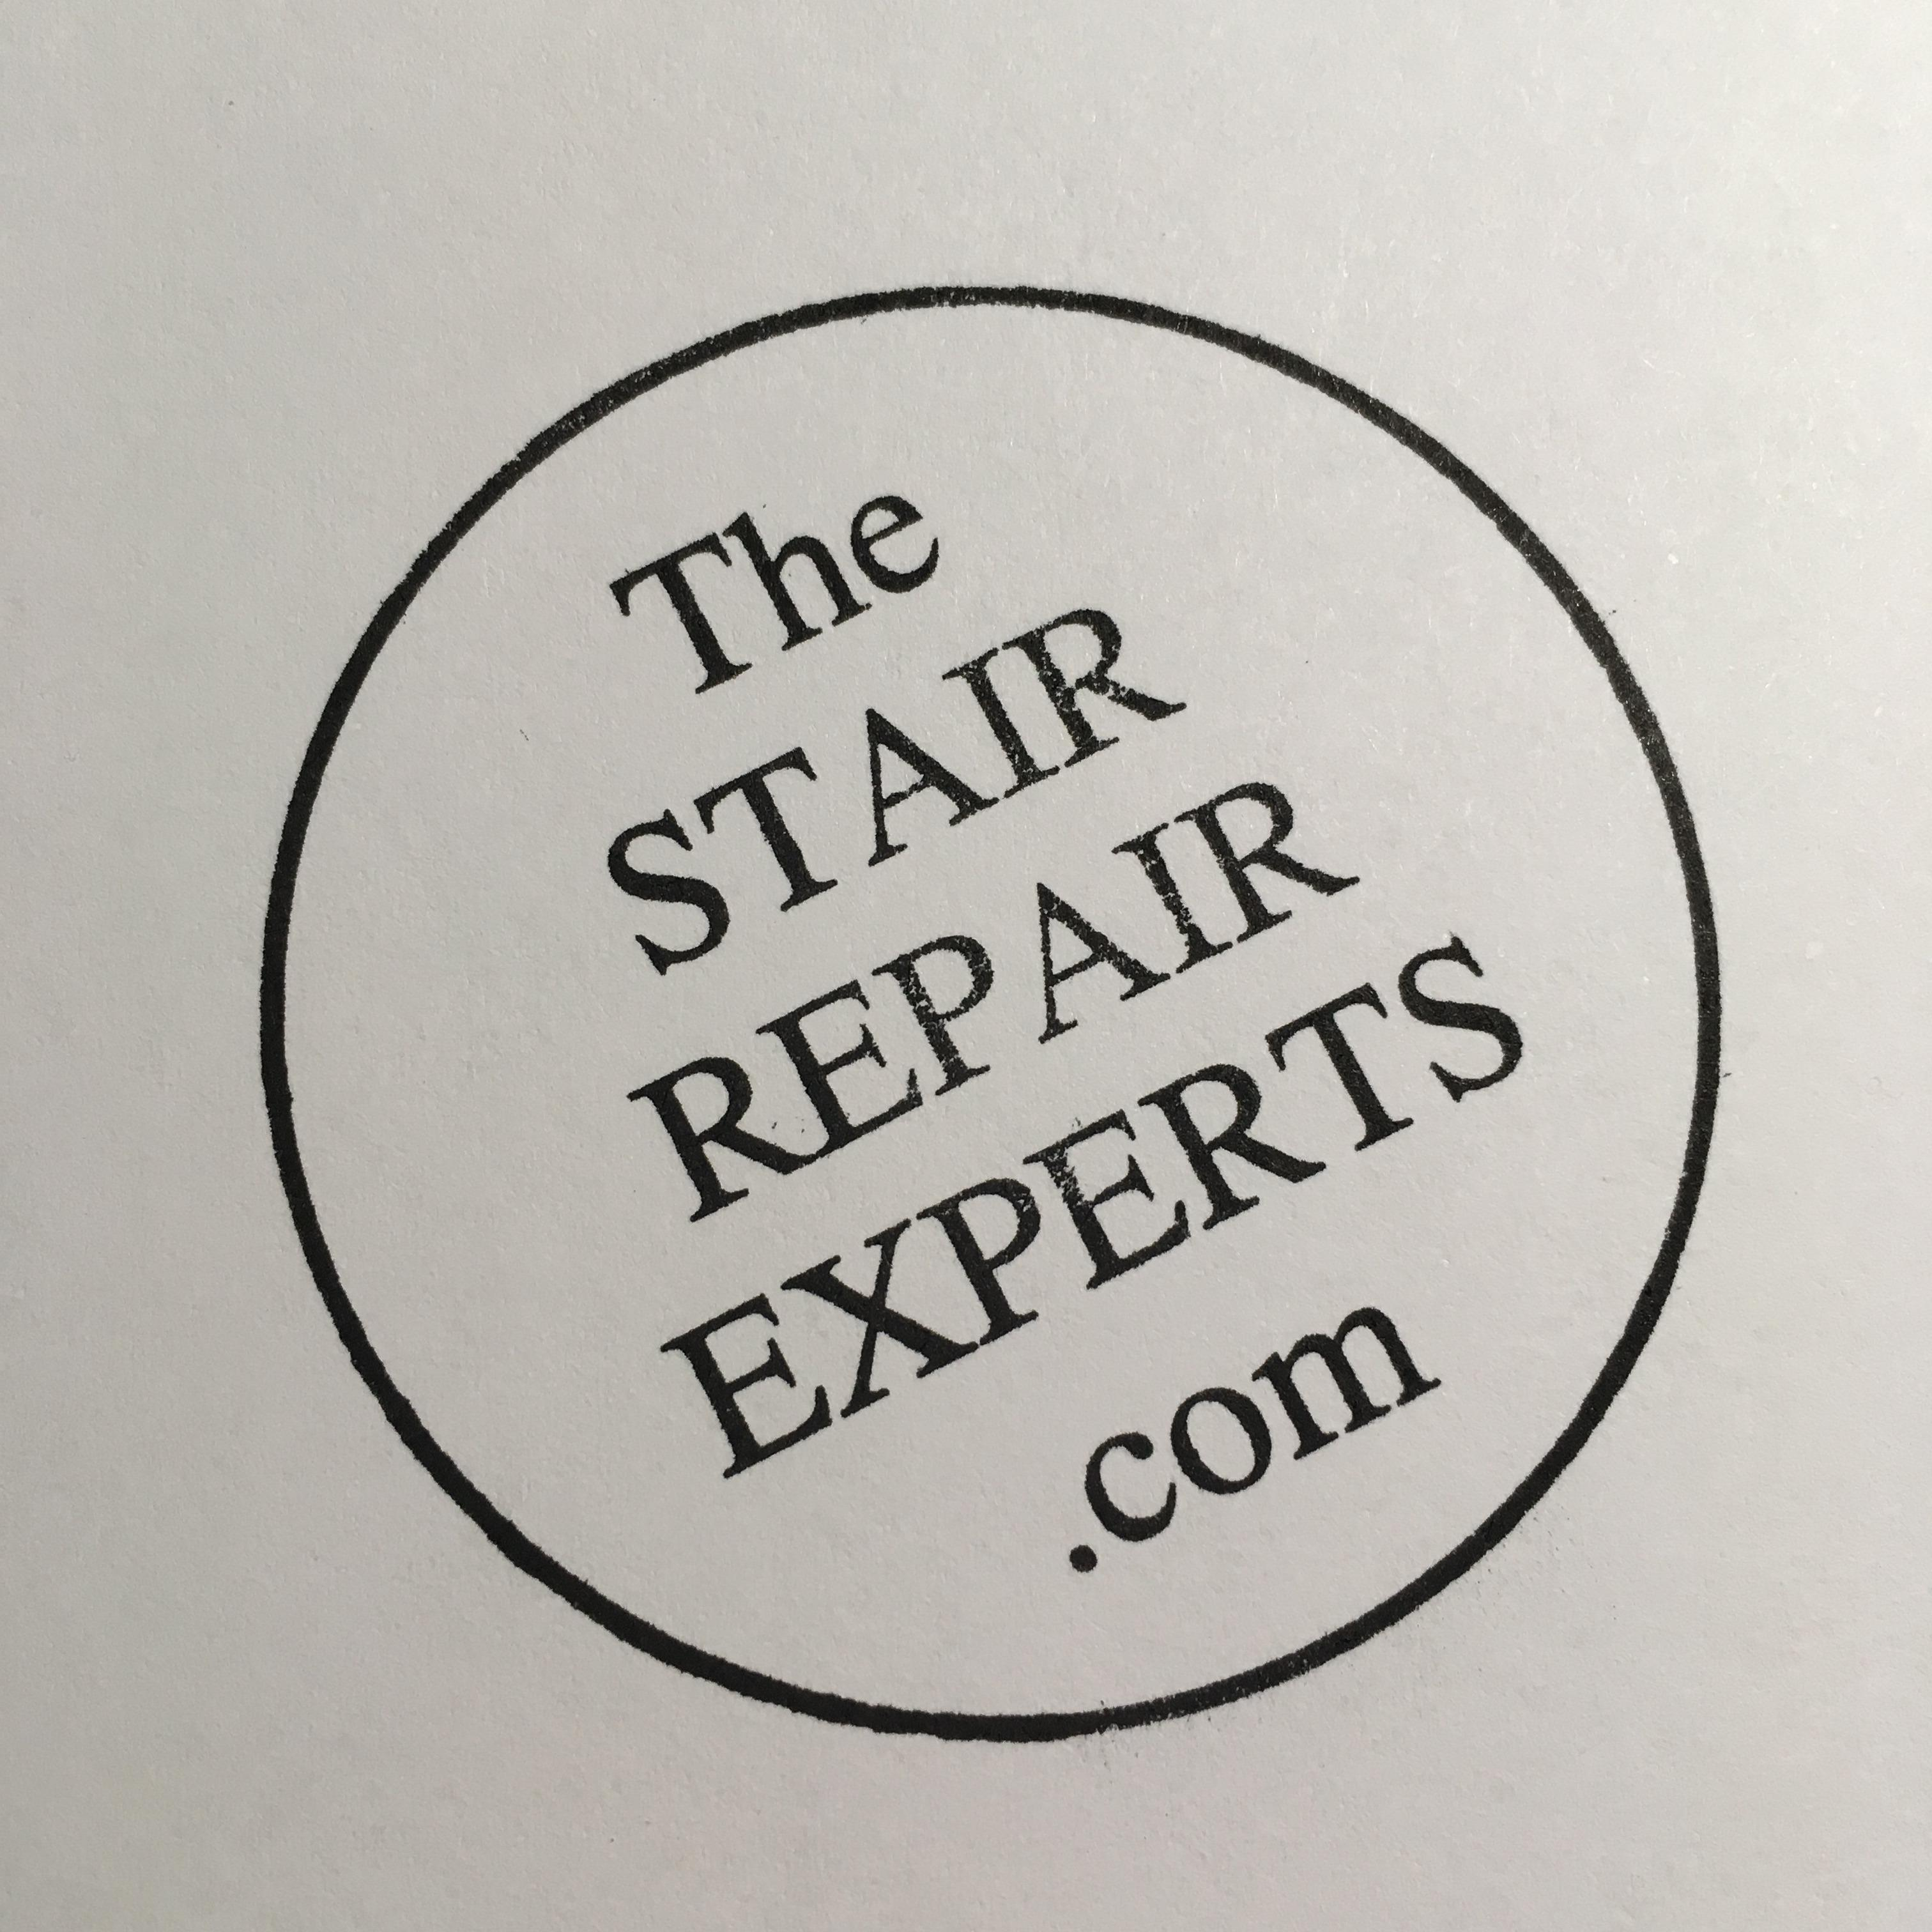 Marty Anderson and Associates - Stair Repair